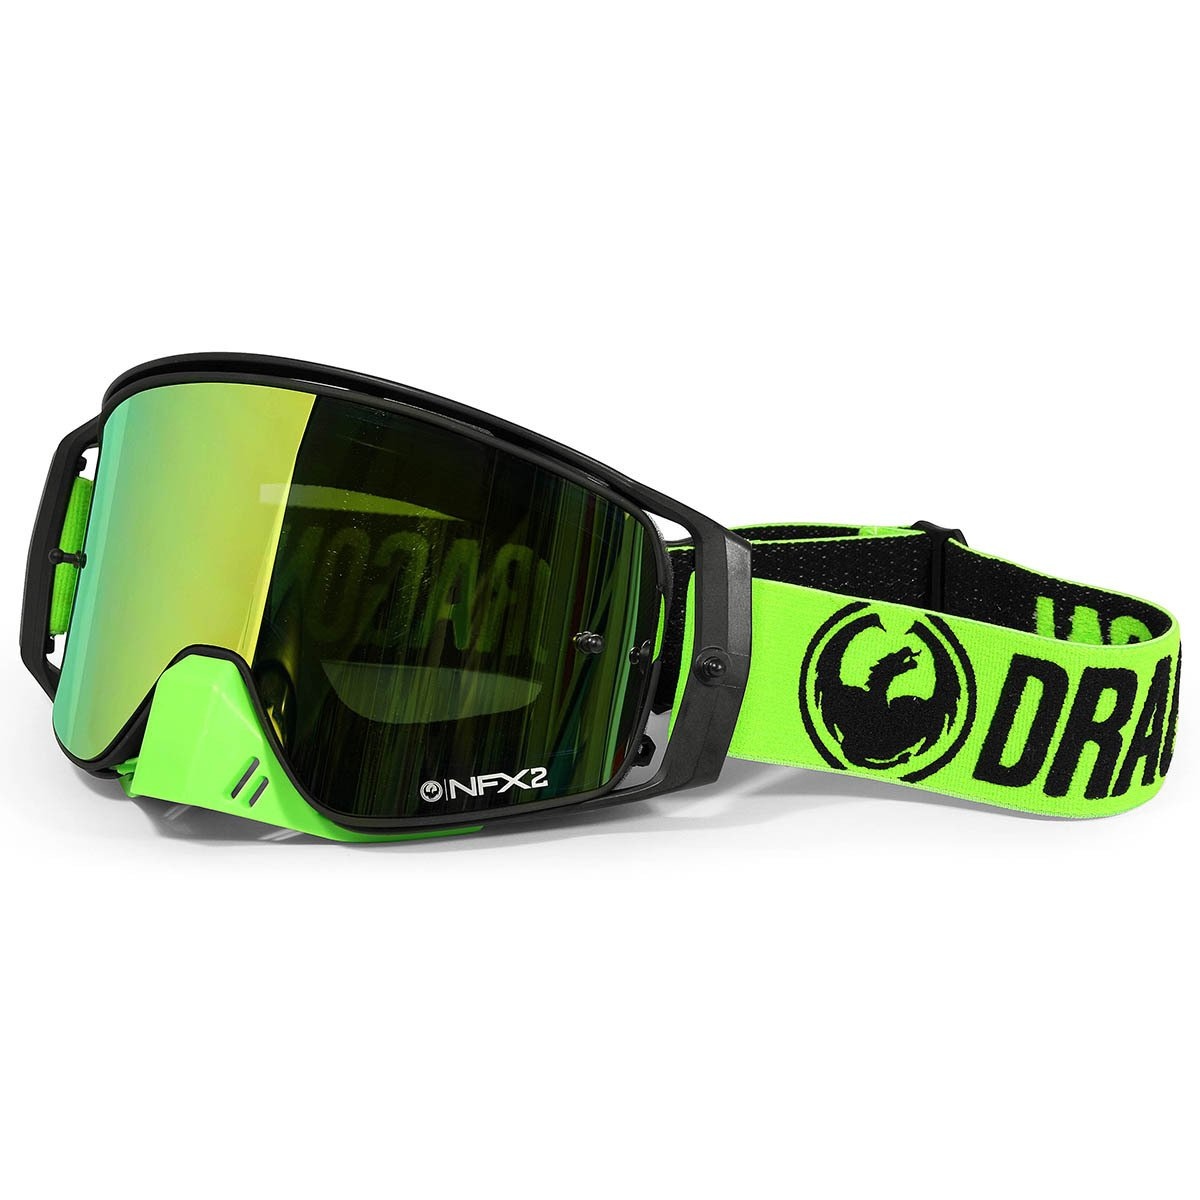 Dragon Alliance Break Green Unisex NFX2 Off-Road Goggles Eyewear, Injected Smoke, One Size